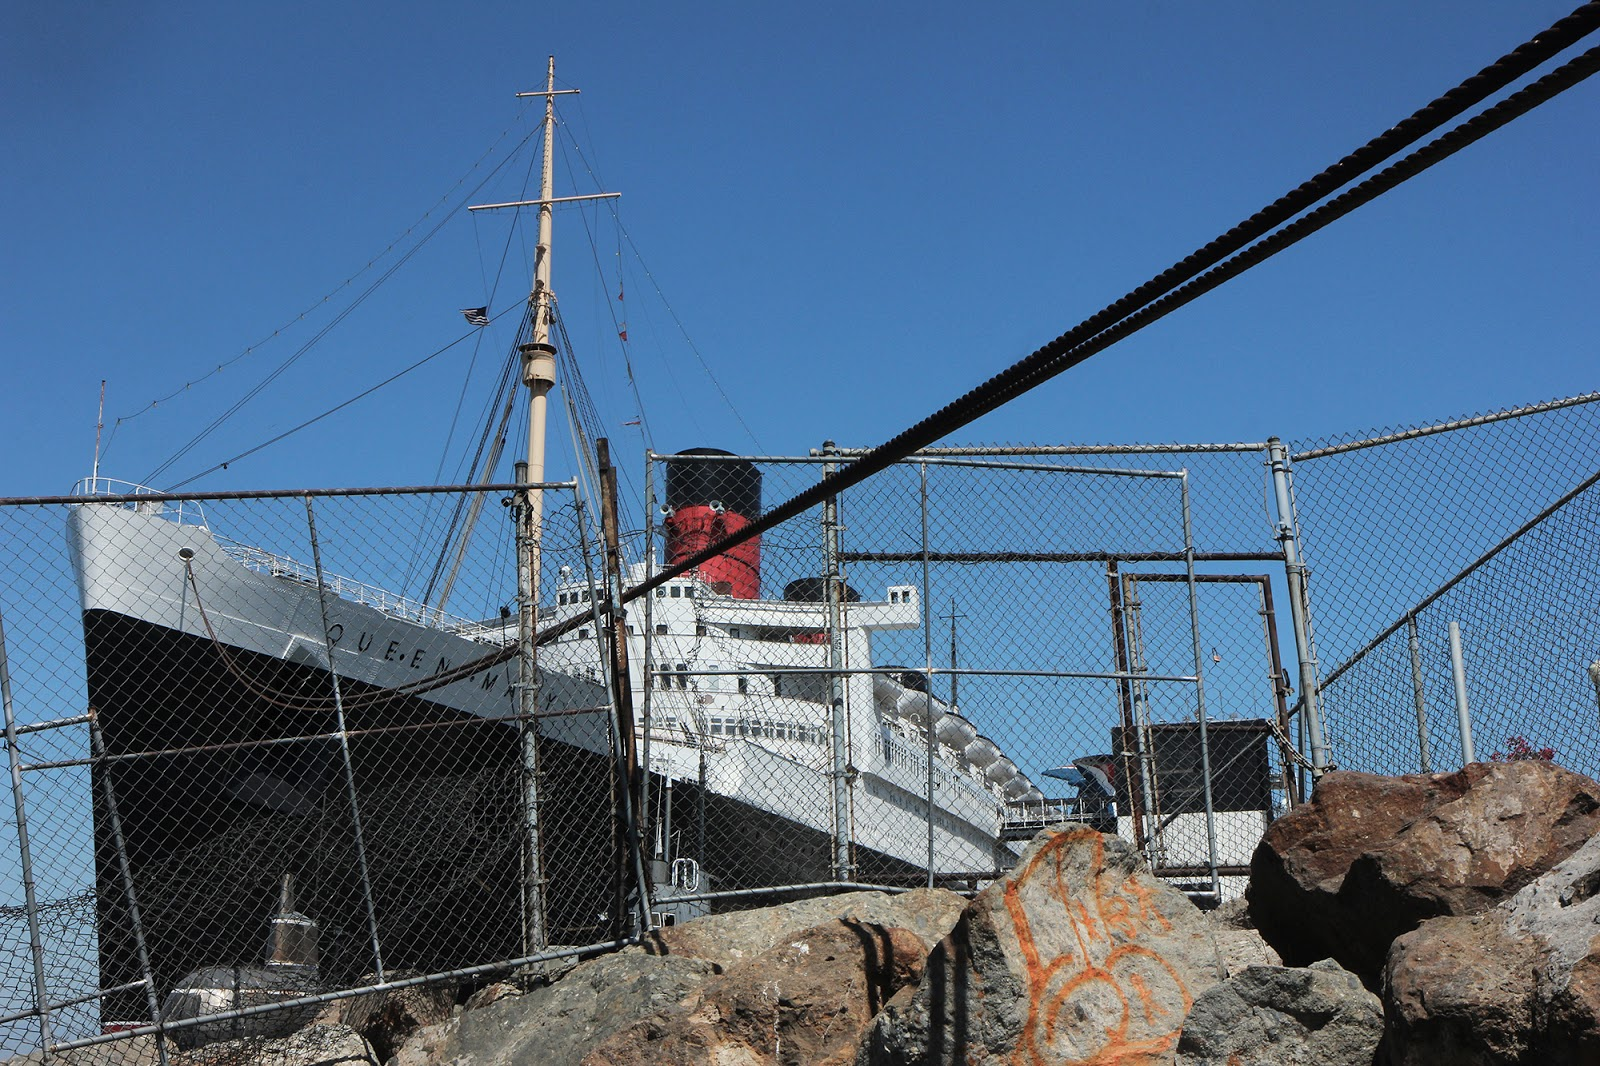 A fence keeps people off of the rocky barrier surrounding the Queen Mary in Downtown Long Beach, Thursday, June 10, 2021. Photo by Brandon Richardson.